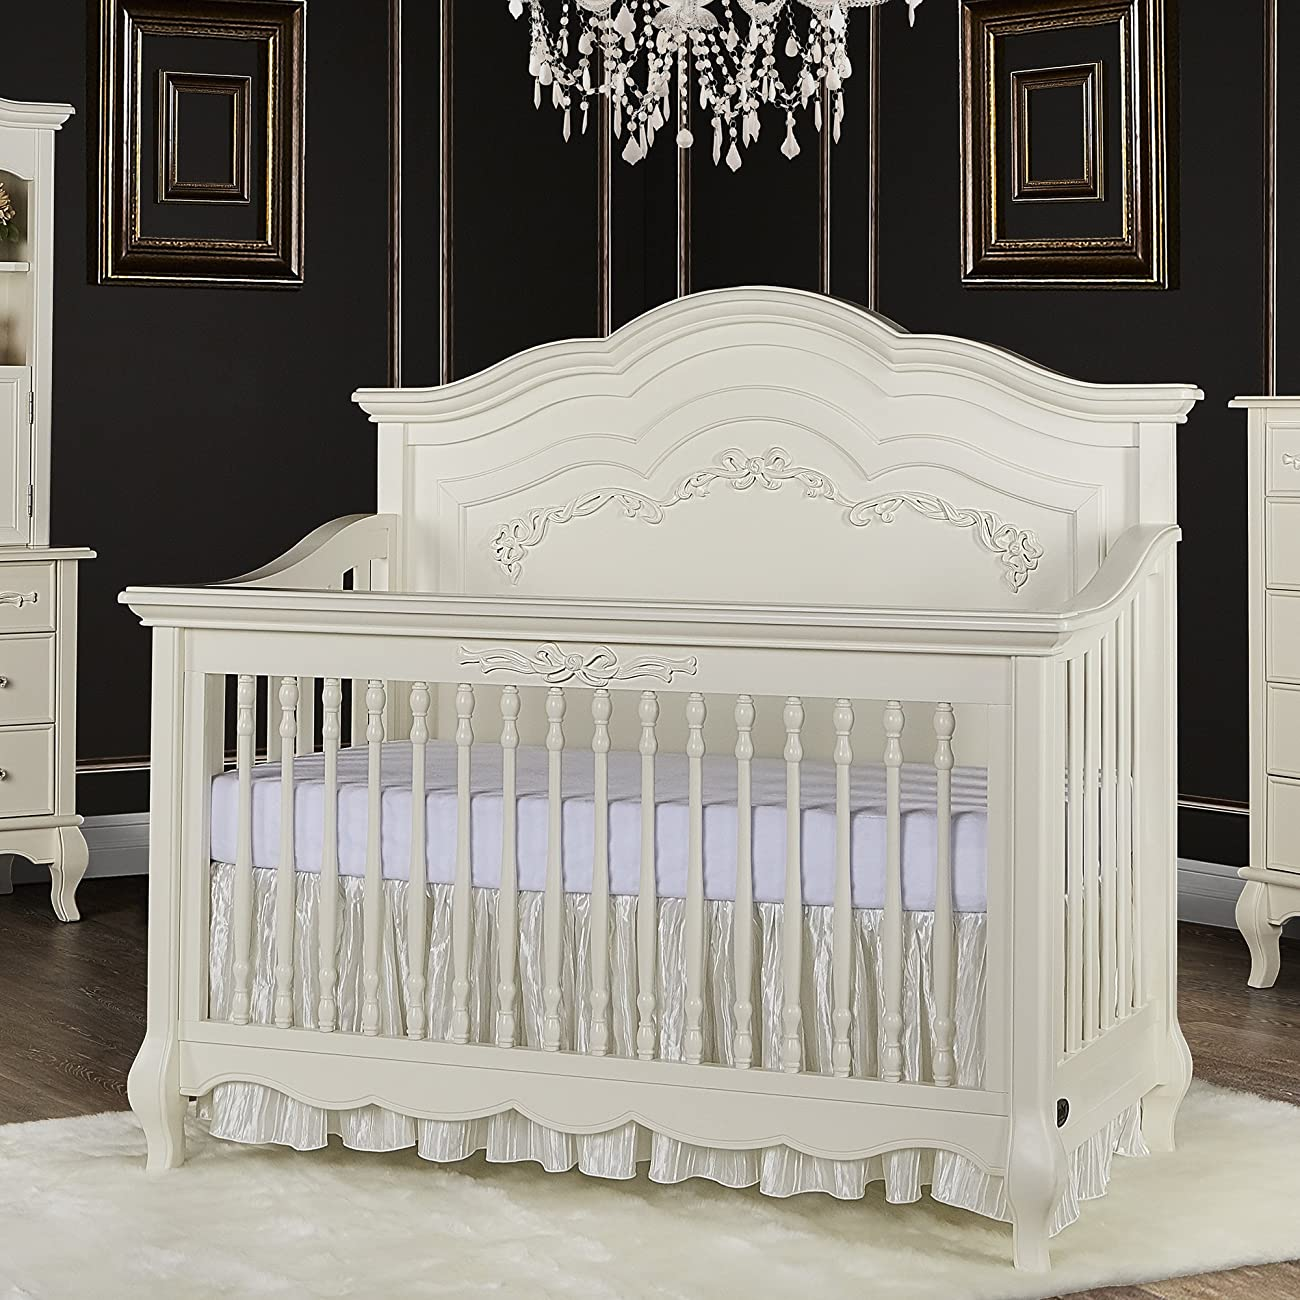 Evolur Aurora 5-in-1 Convertible Crib, Ivory Lace 2